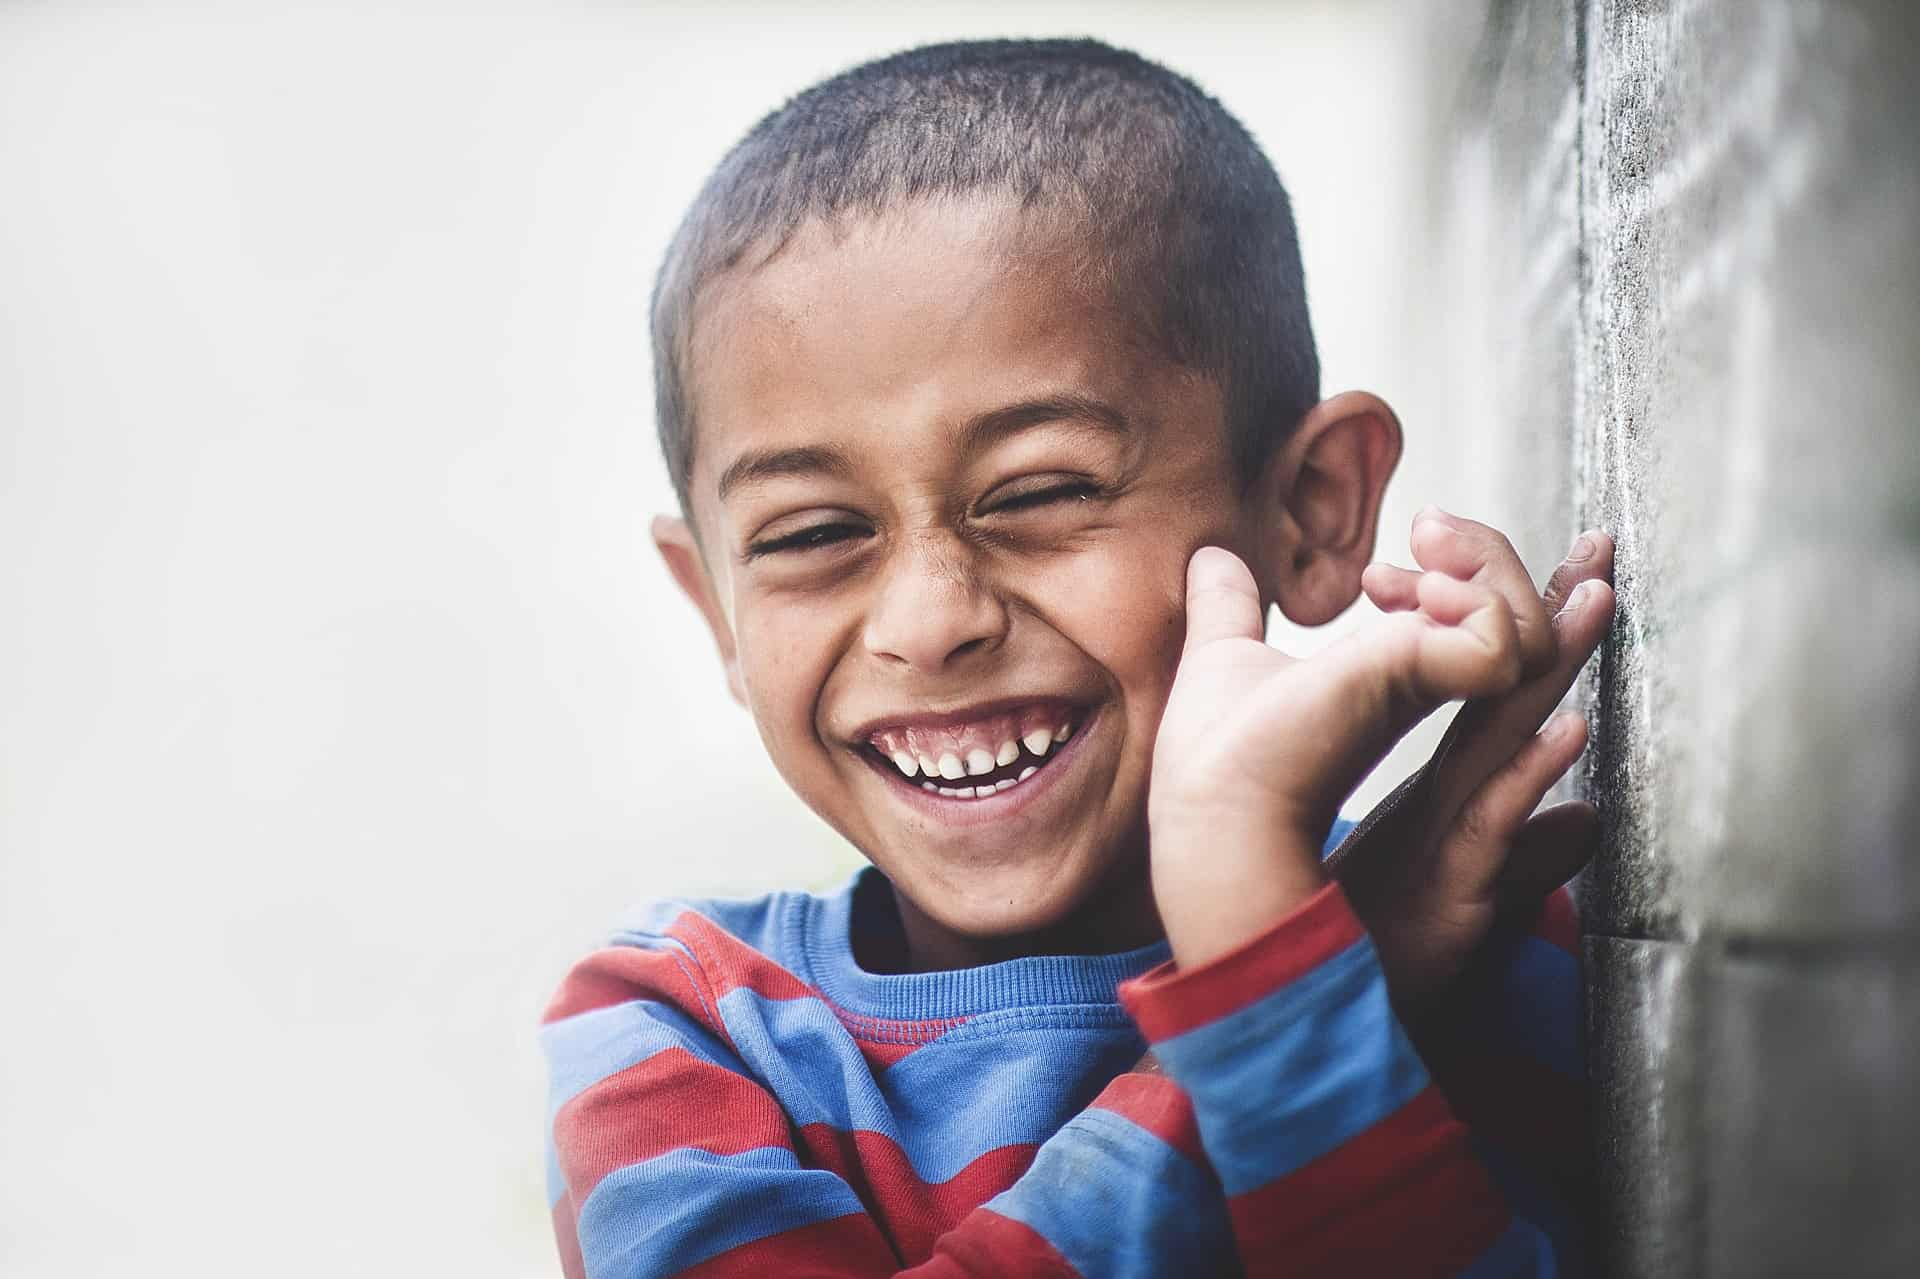 African boy smiling and happy